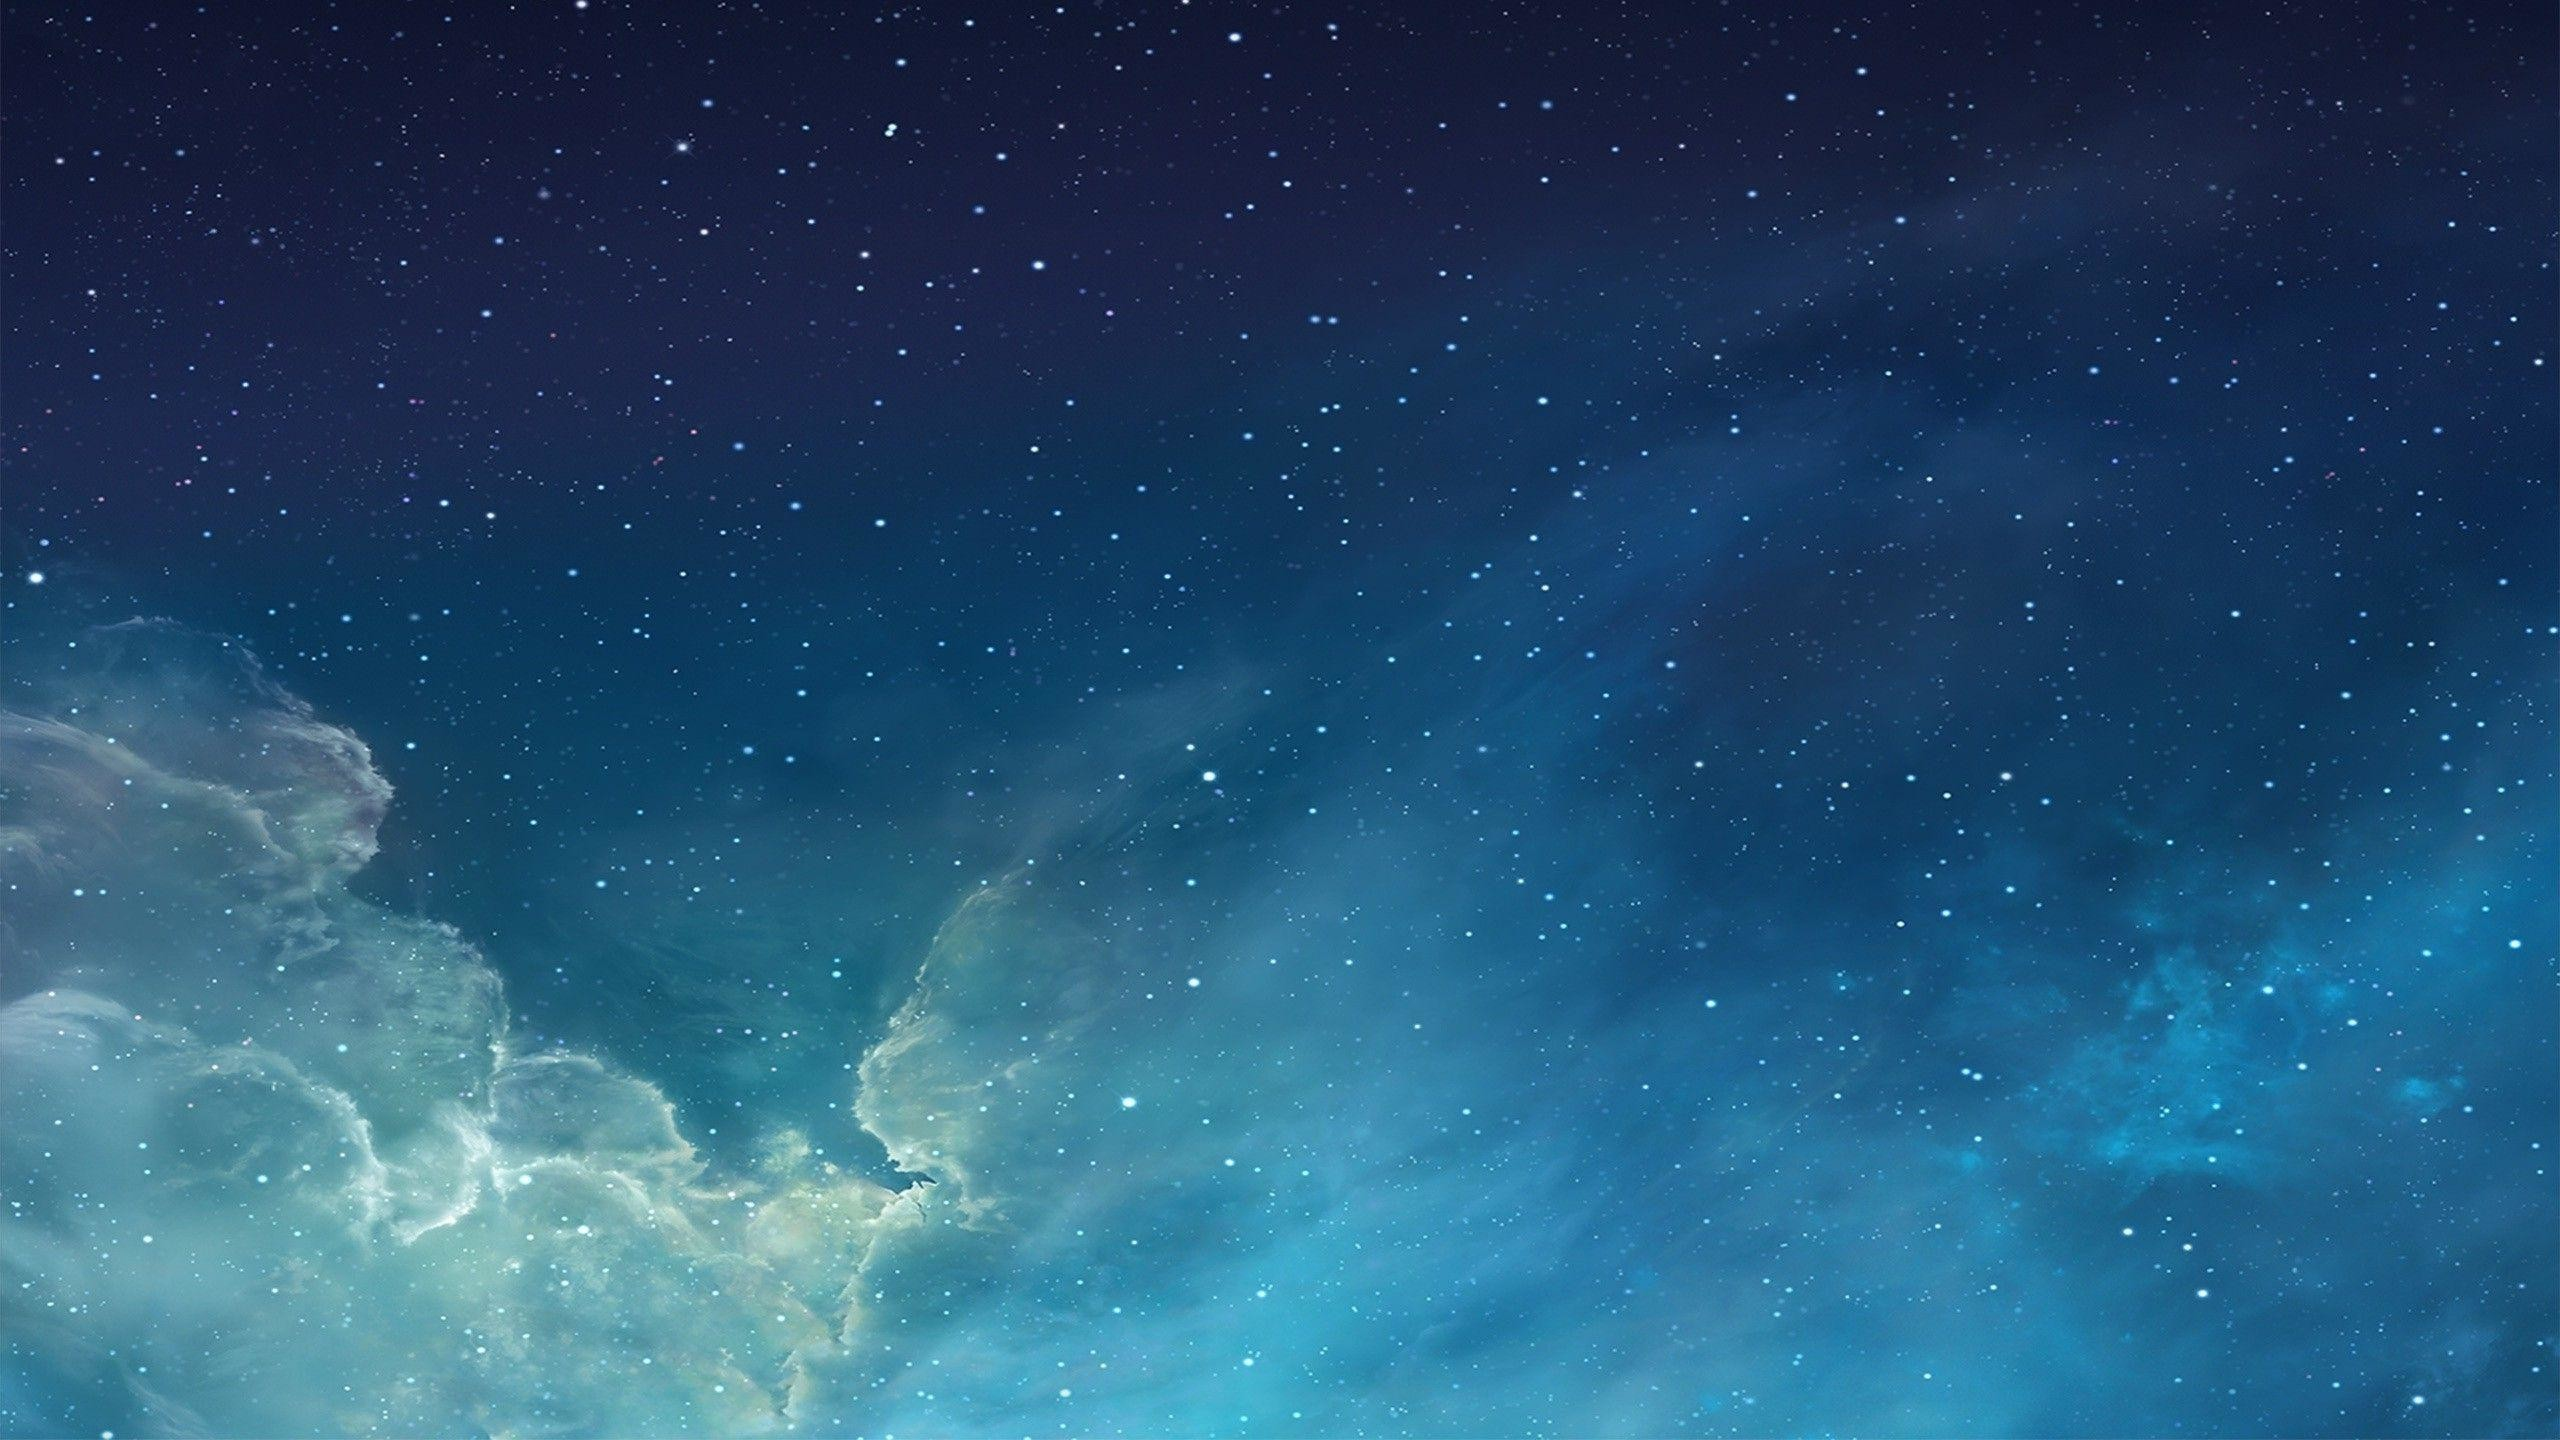 2560x1440 Stars in the sky Wallpaper #